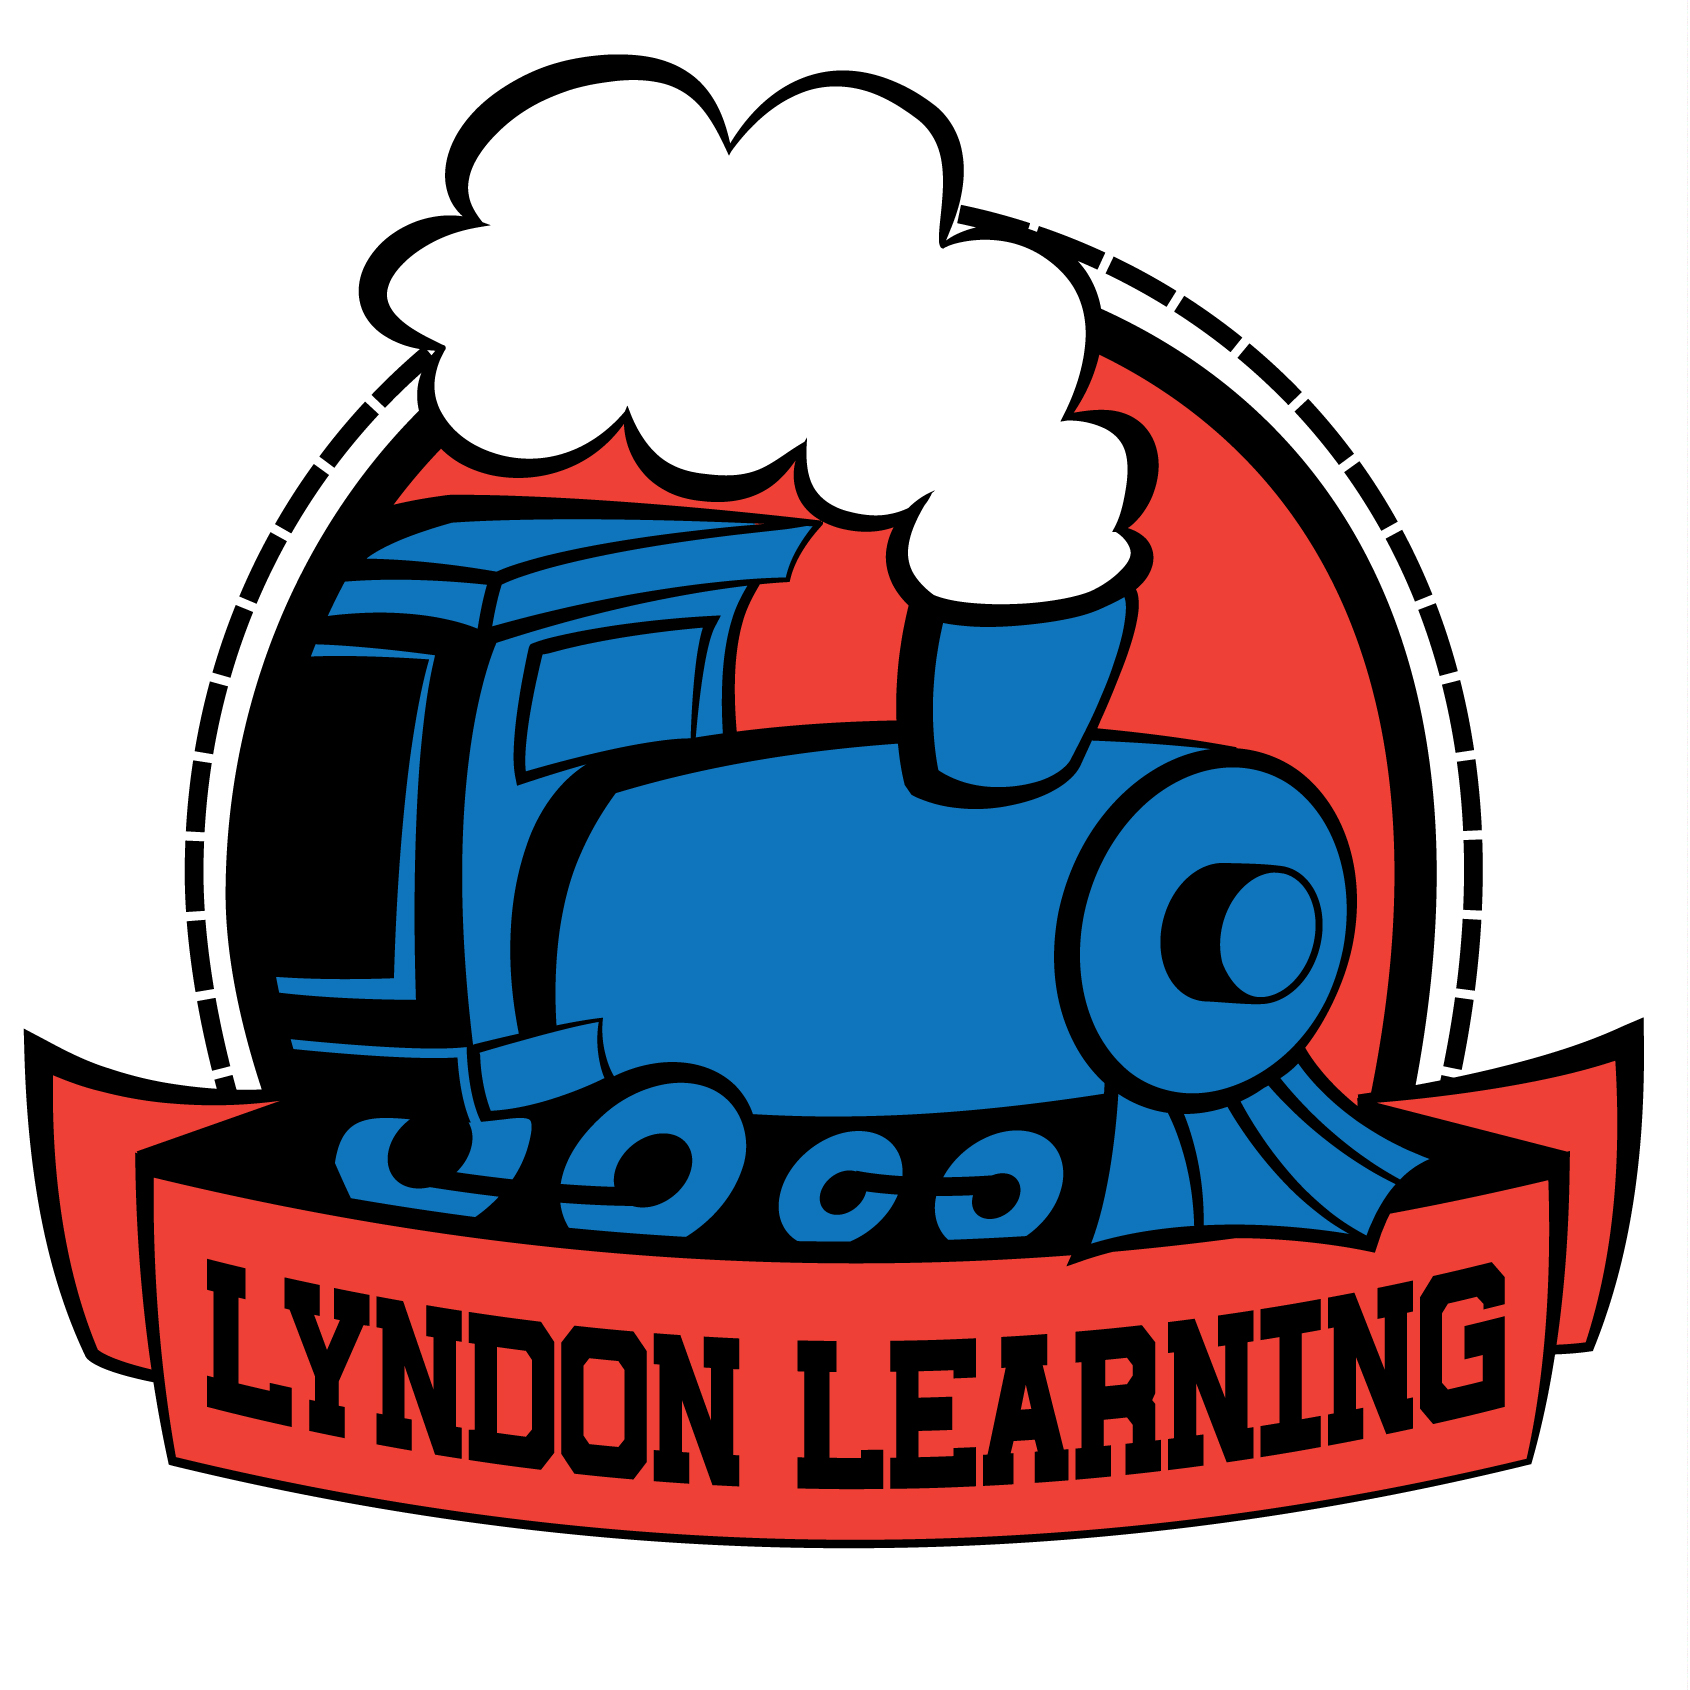 Lyndon Learning Childcare, INC